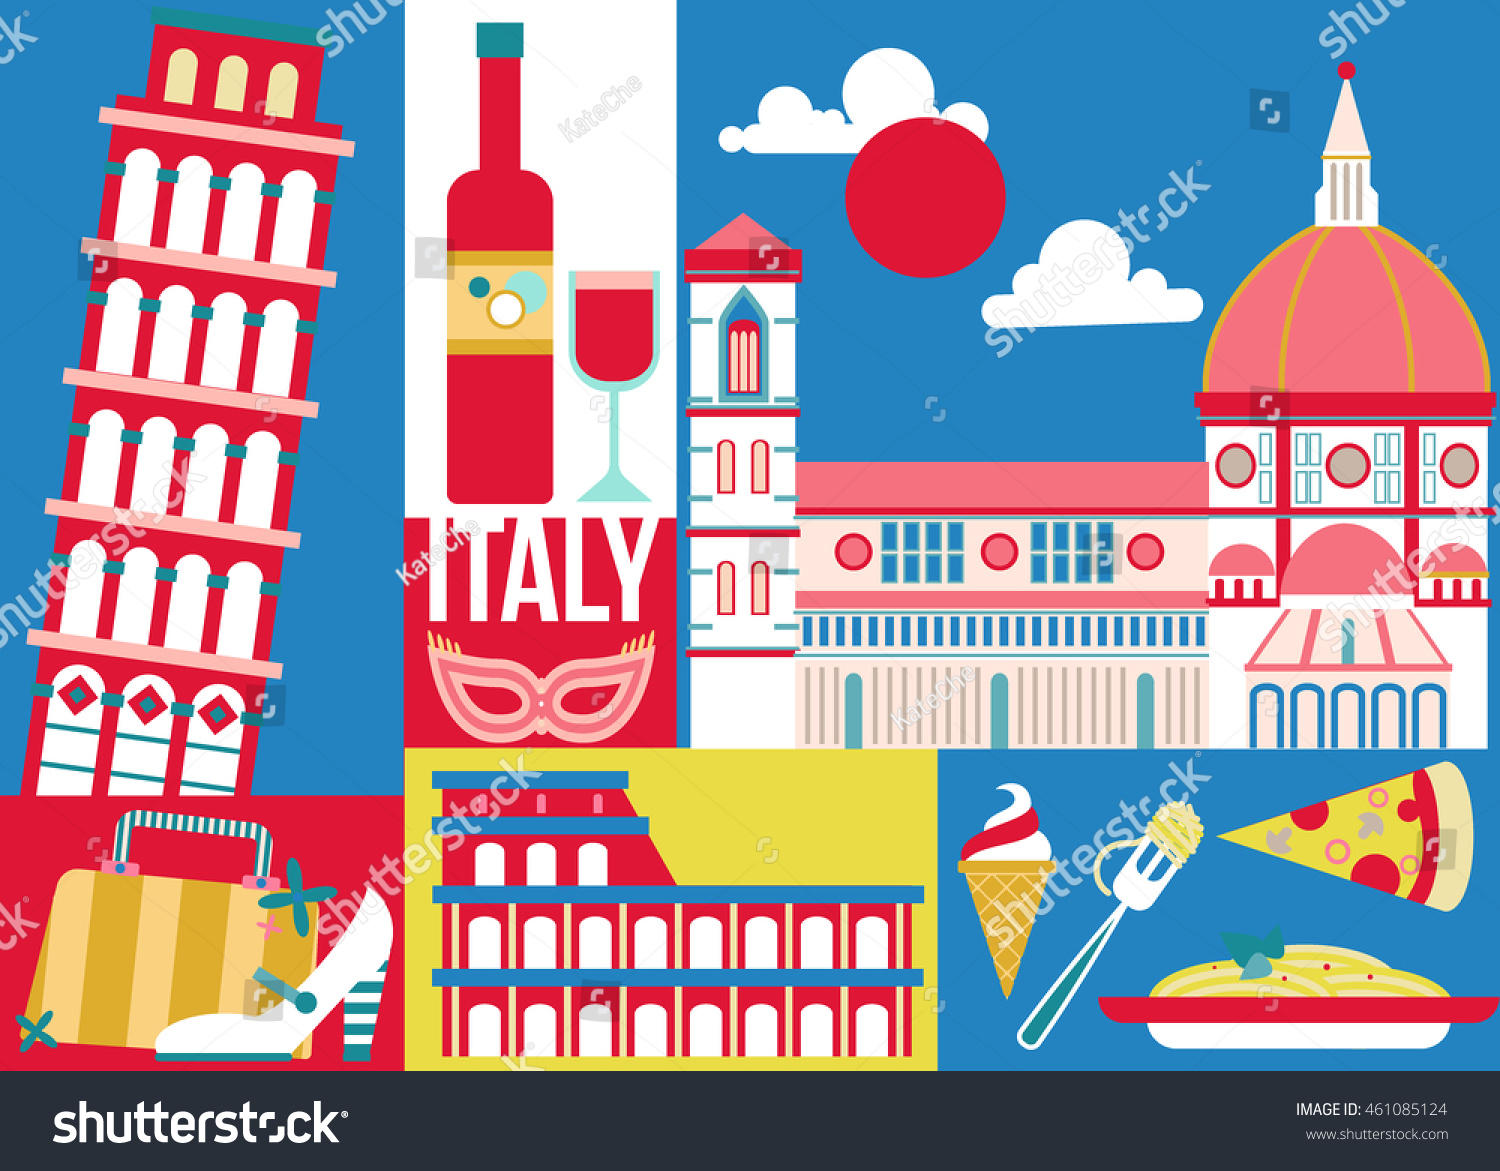 Royalty Free Italy Travel Concept Design For Poster 461085124